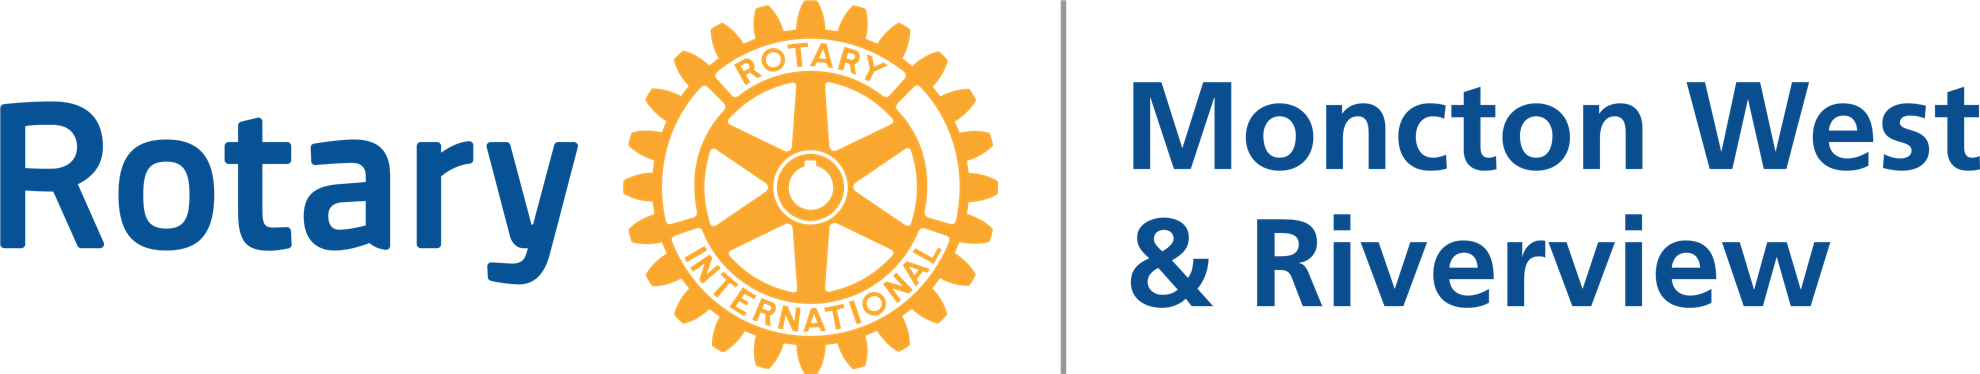 Moncton West & River logo